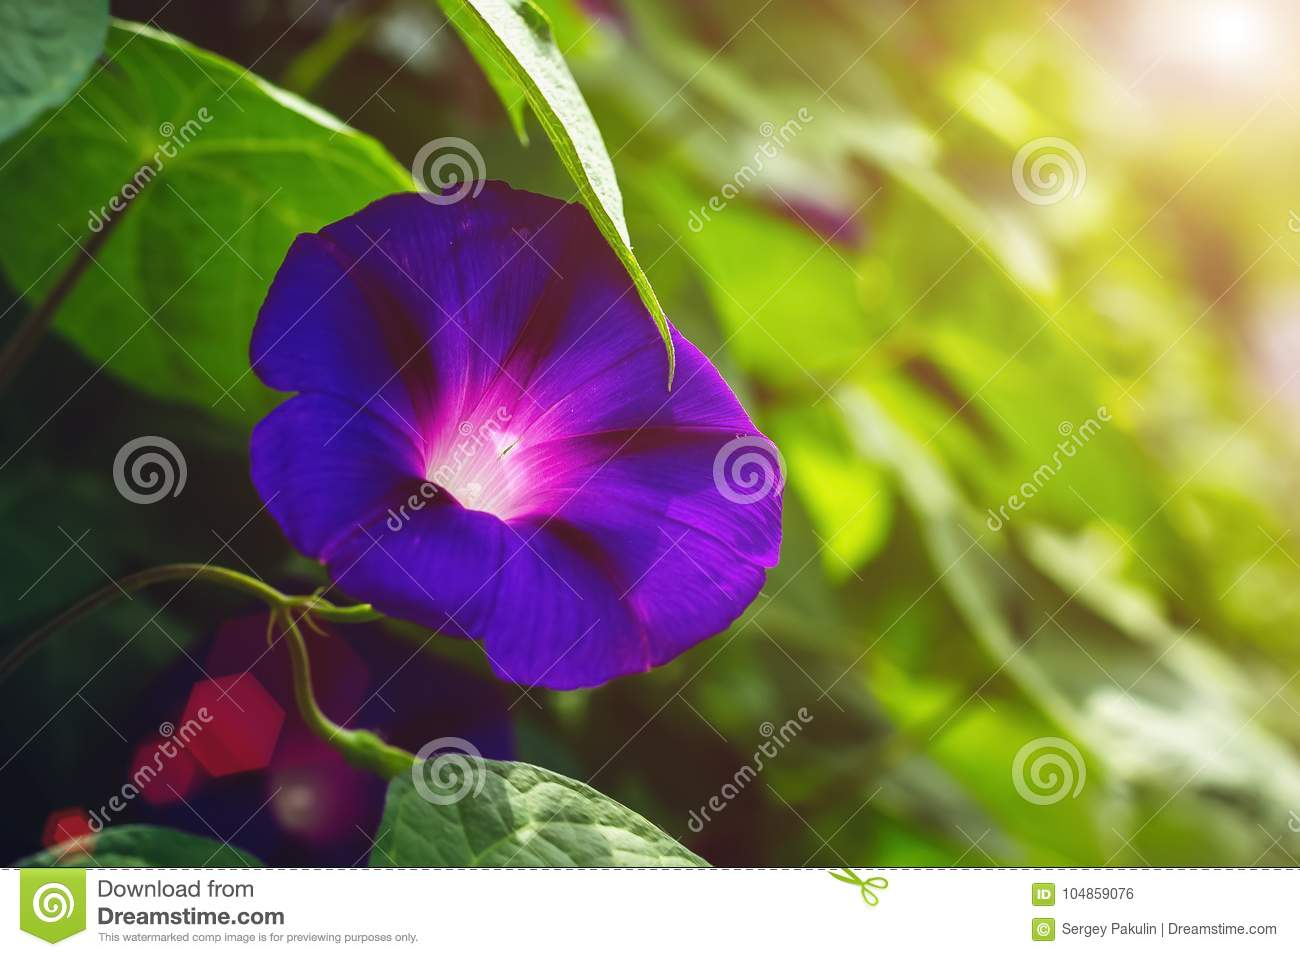 Blue colored morning glory flowers background stock photo image of download blue colored morning glory flowers background stock photo image of blooming botanical mightylinksfo